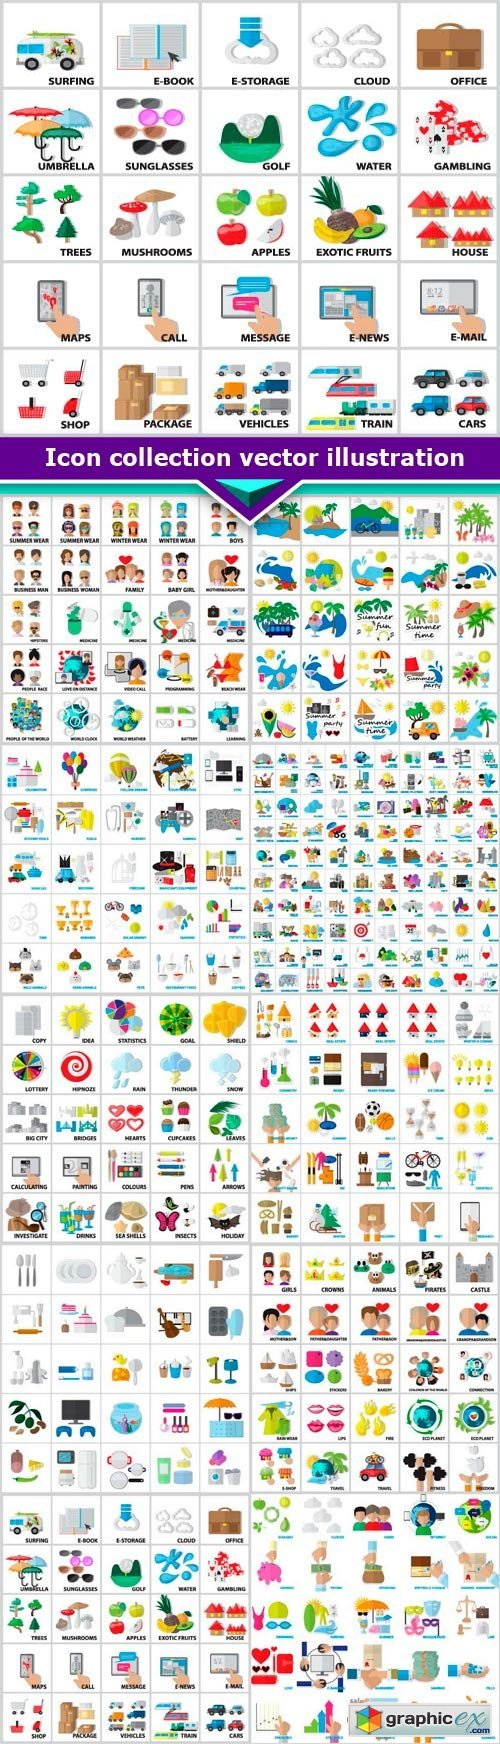 Icon collection vector illustration 10x EPS